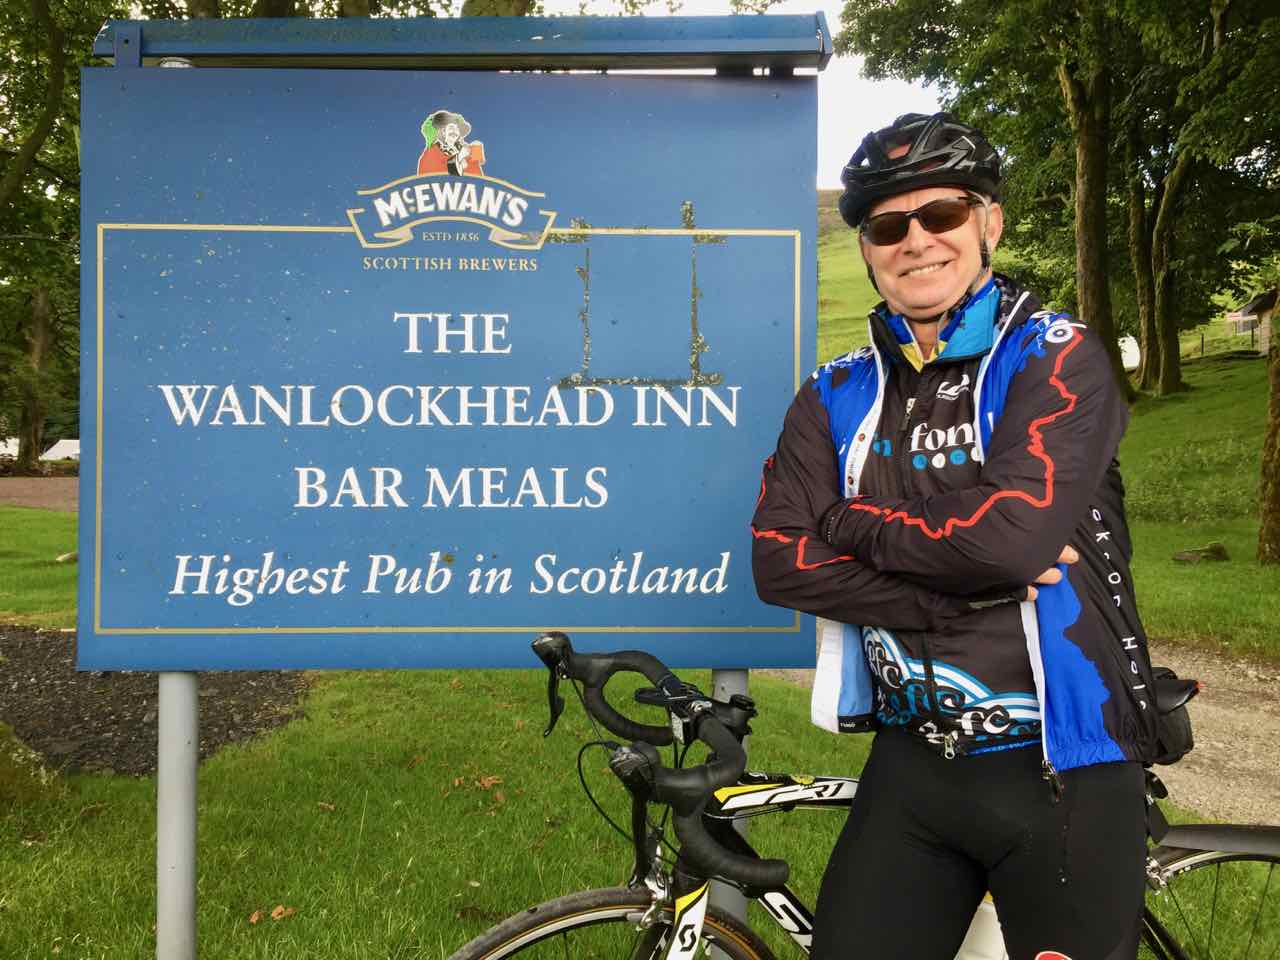 Highest Pub in Scotland